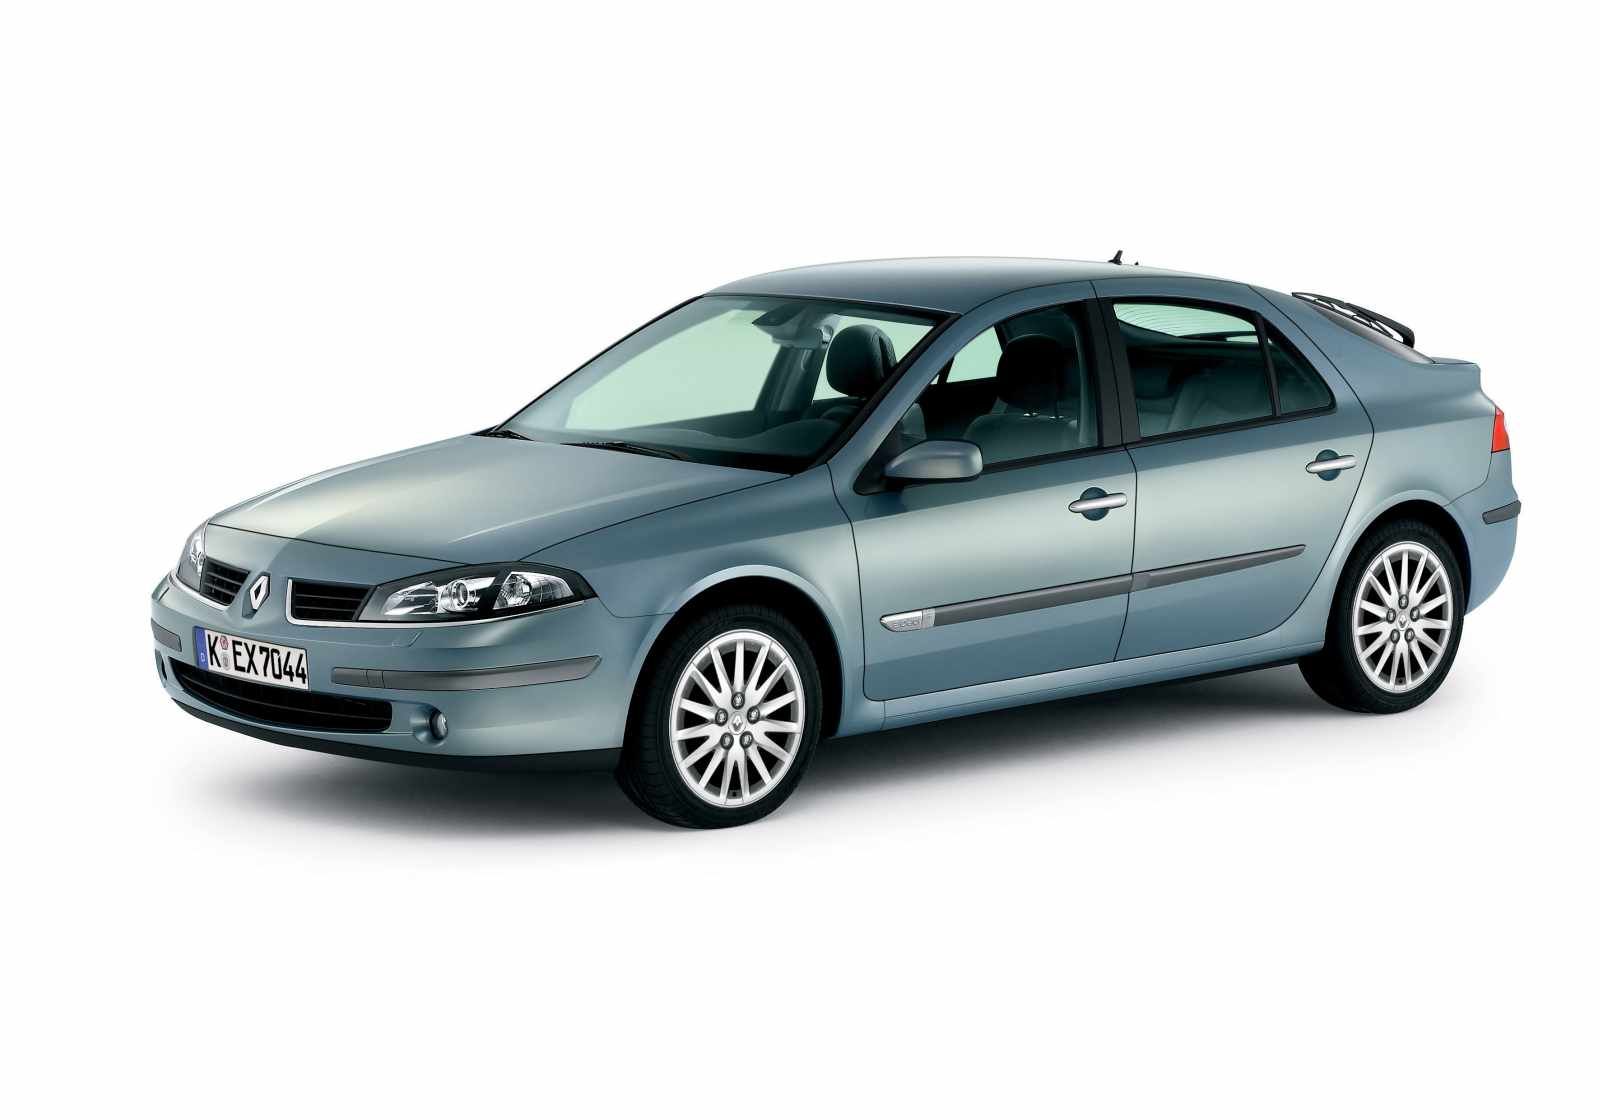 2006 renault laguna ii pictures information and specs auto. Black Bedroom Furniture Sets. Home Design Ideas